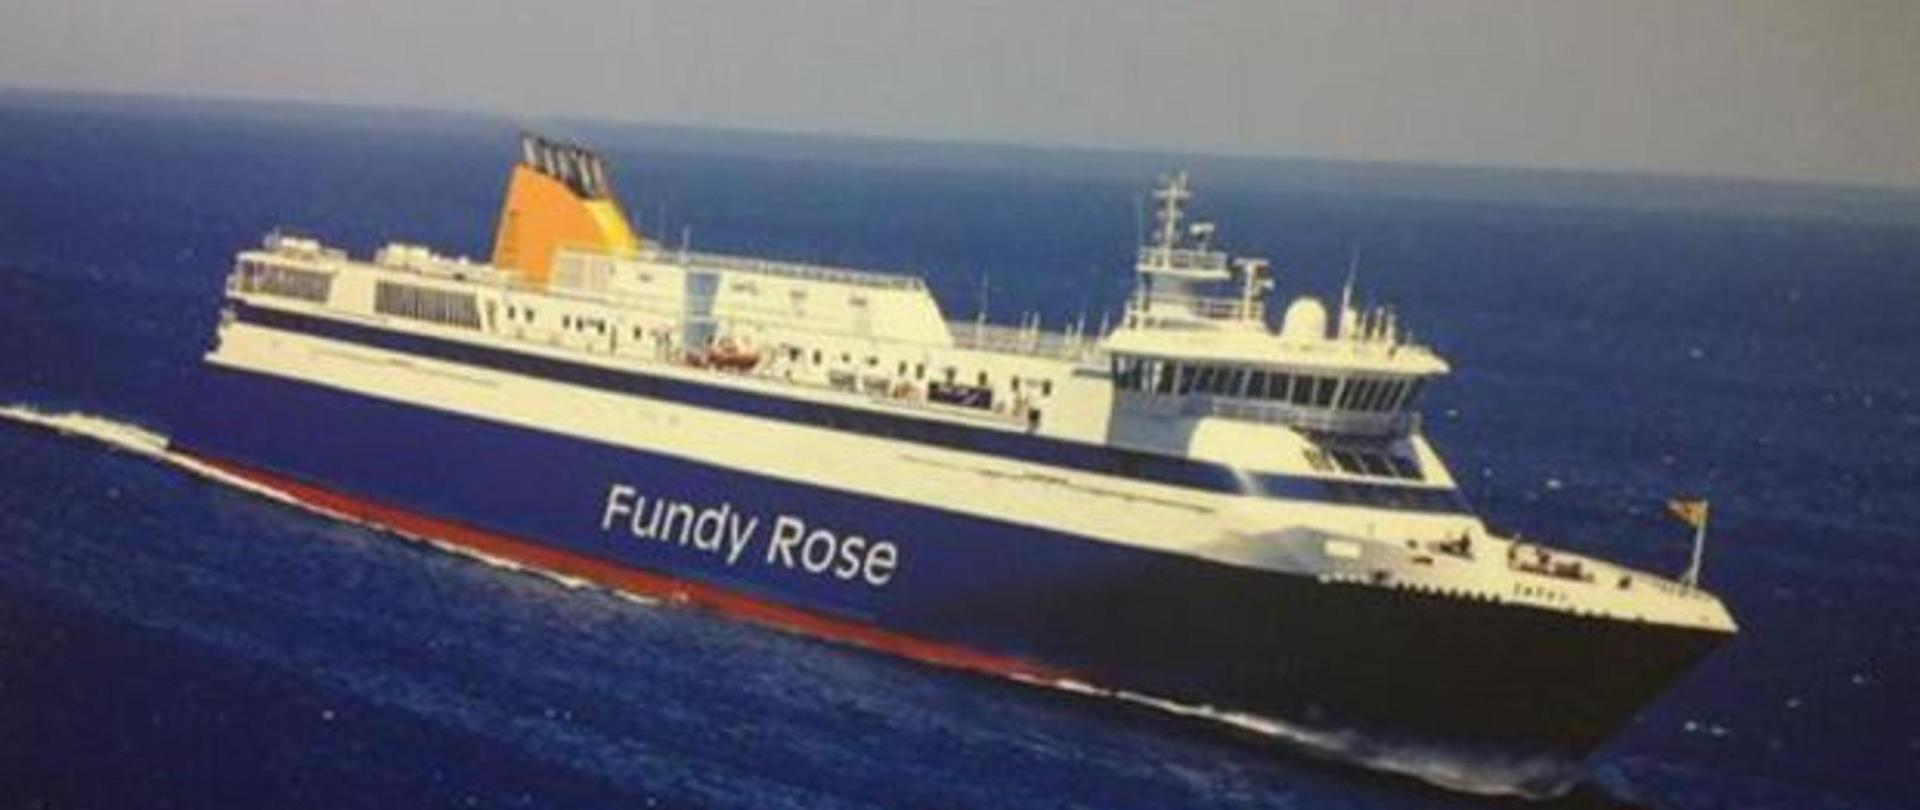 fundy-rose.jpg